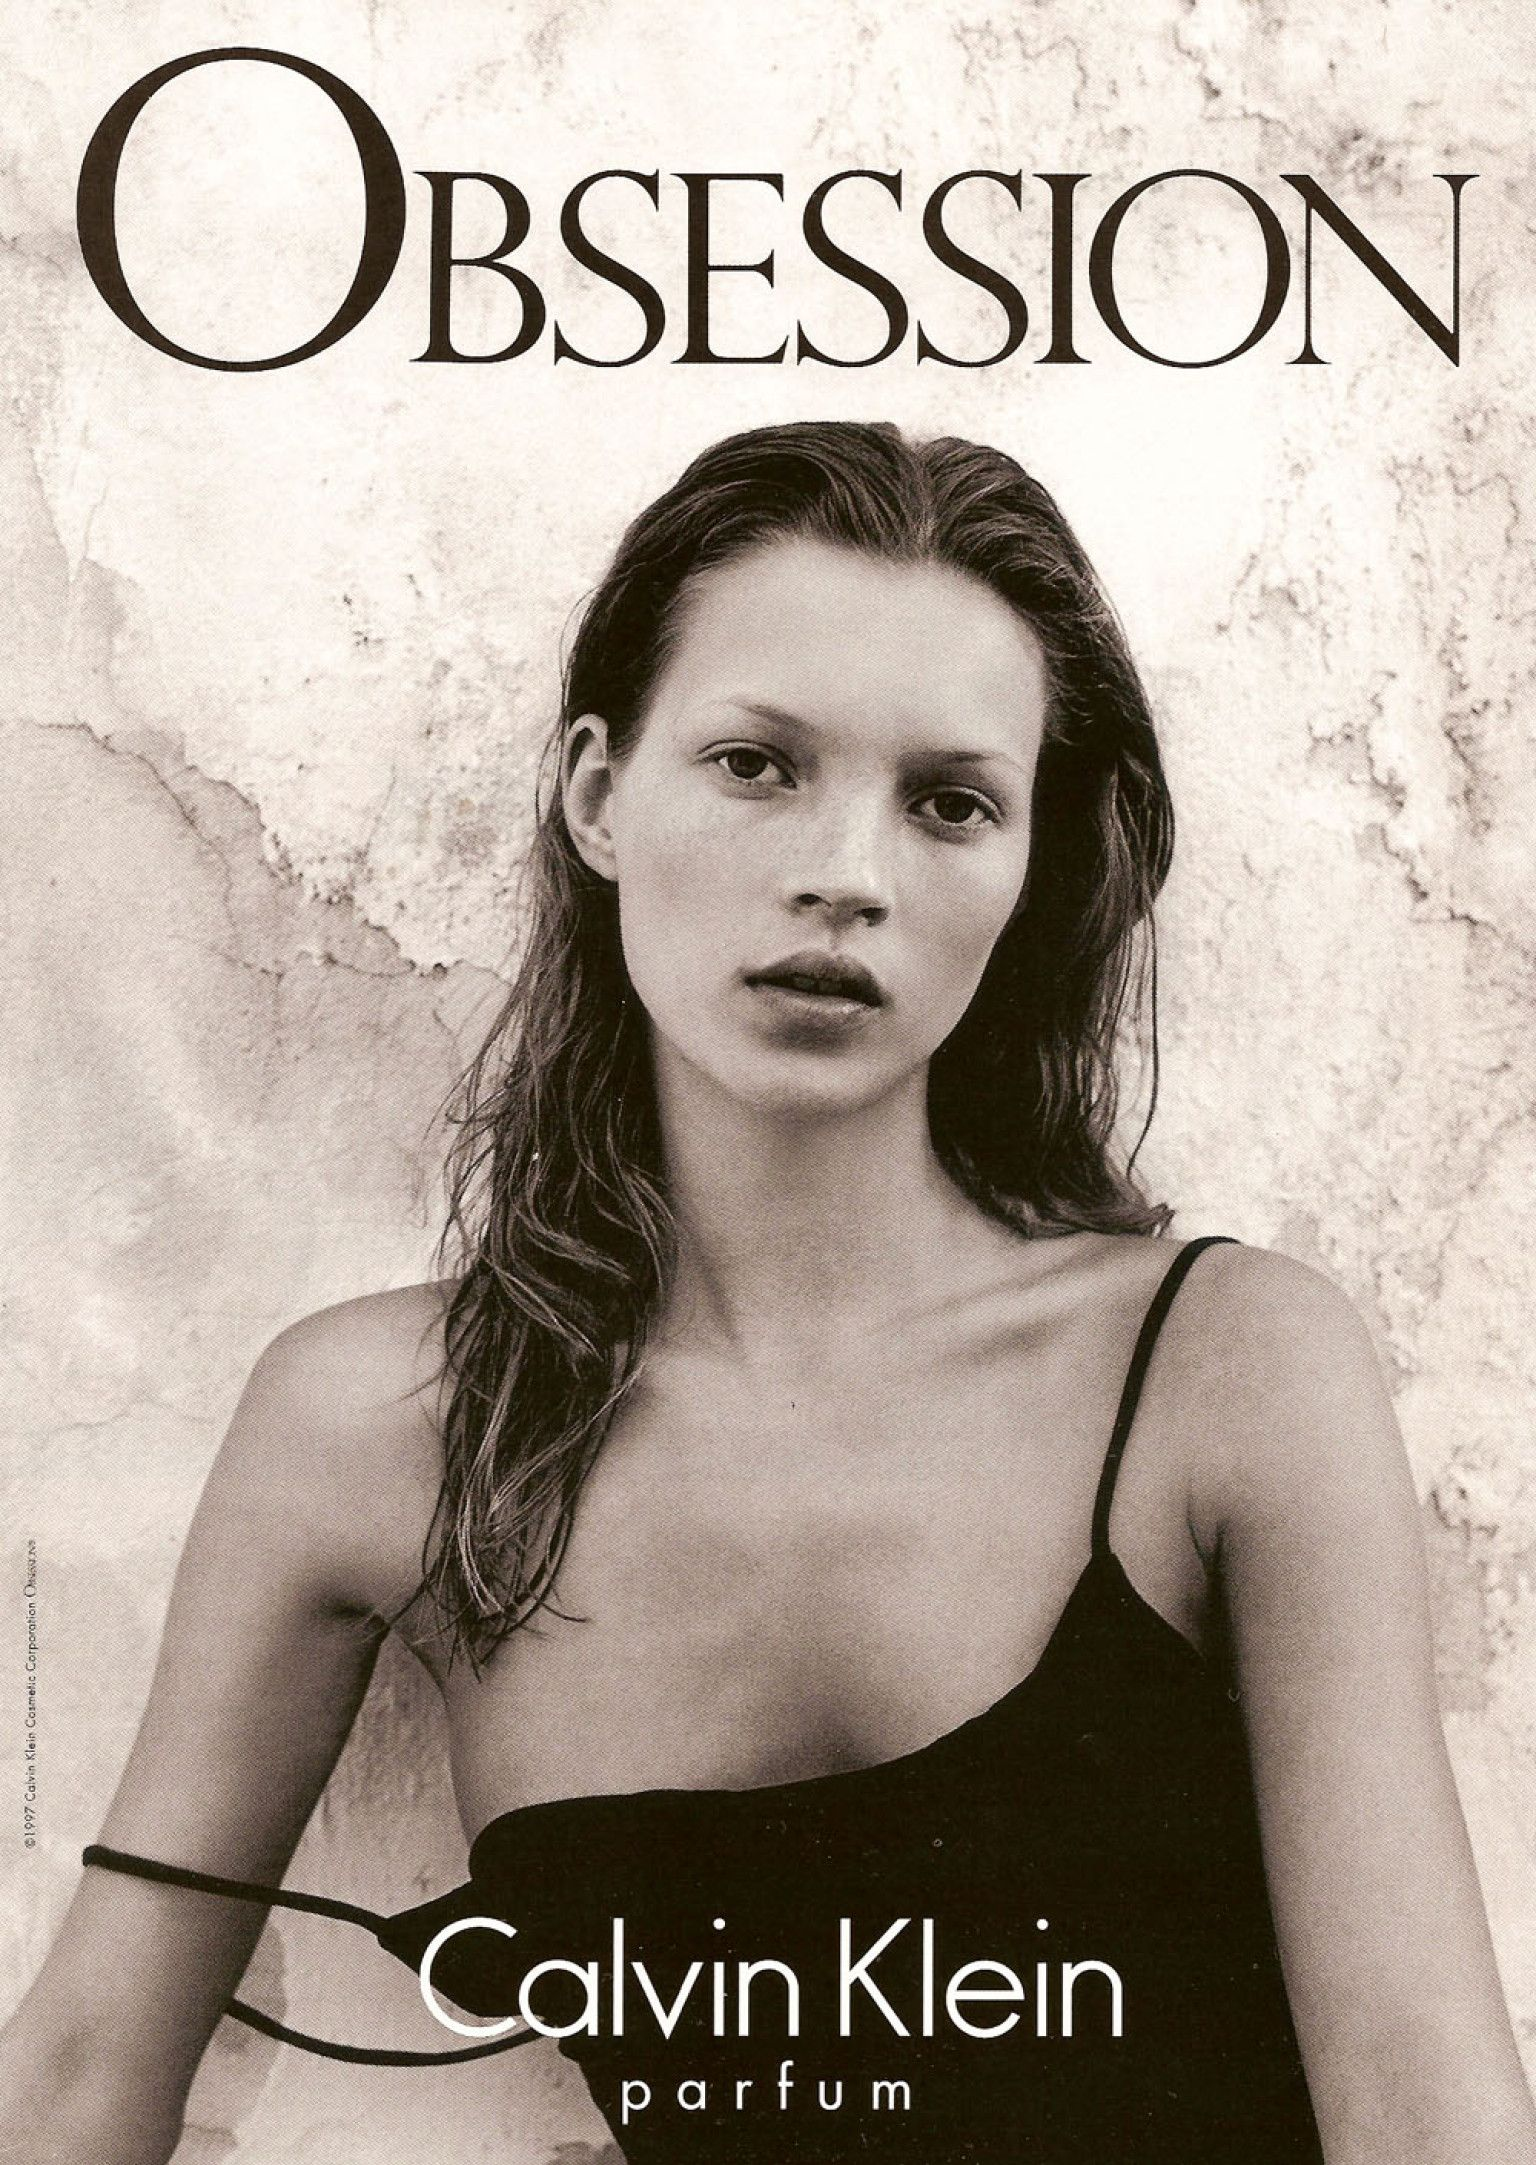 Fashion is known for its provocative ads, and Kate Moss just ...